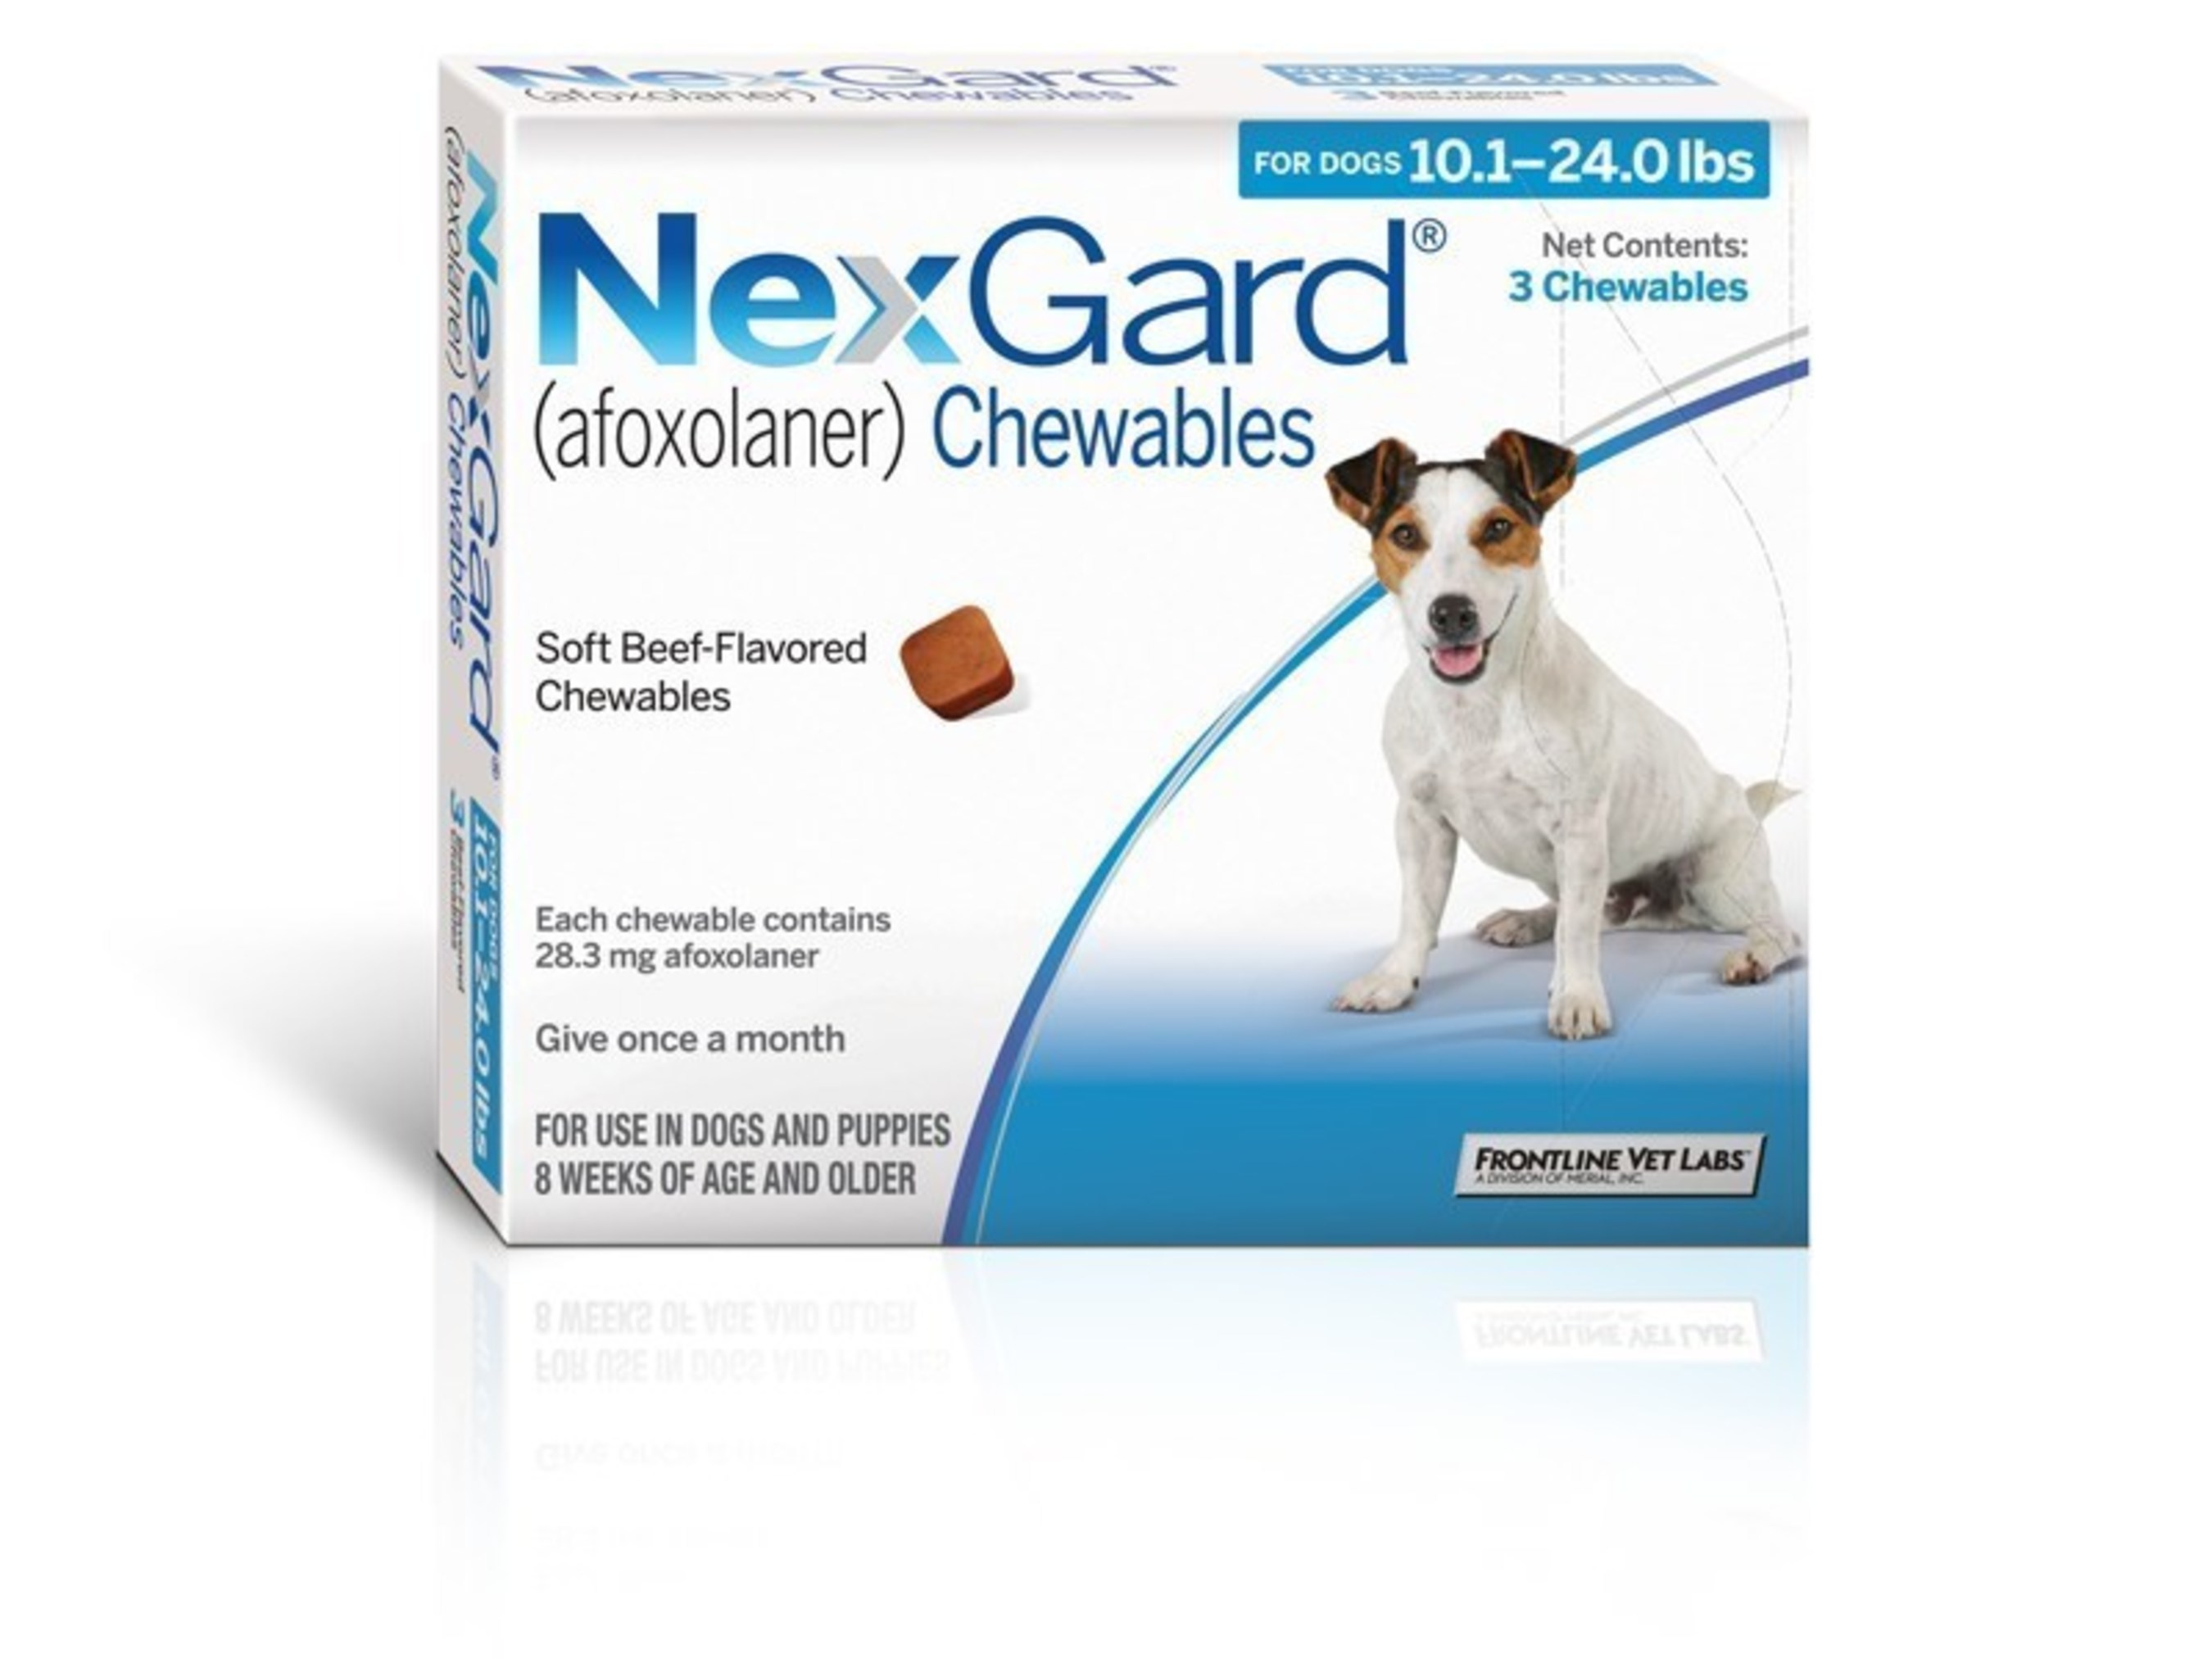 NexGard(R) (afoxolaner), a Merial product, receives the 2015 Best New Product Award from Better Homes and Gardens Magazine